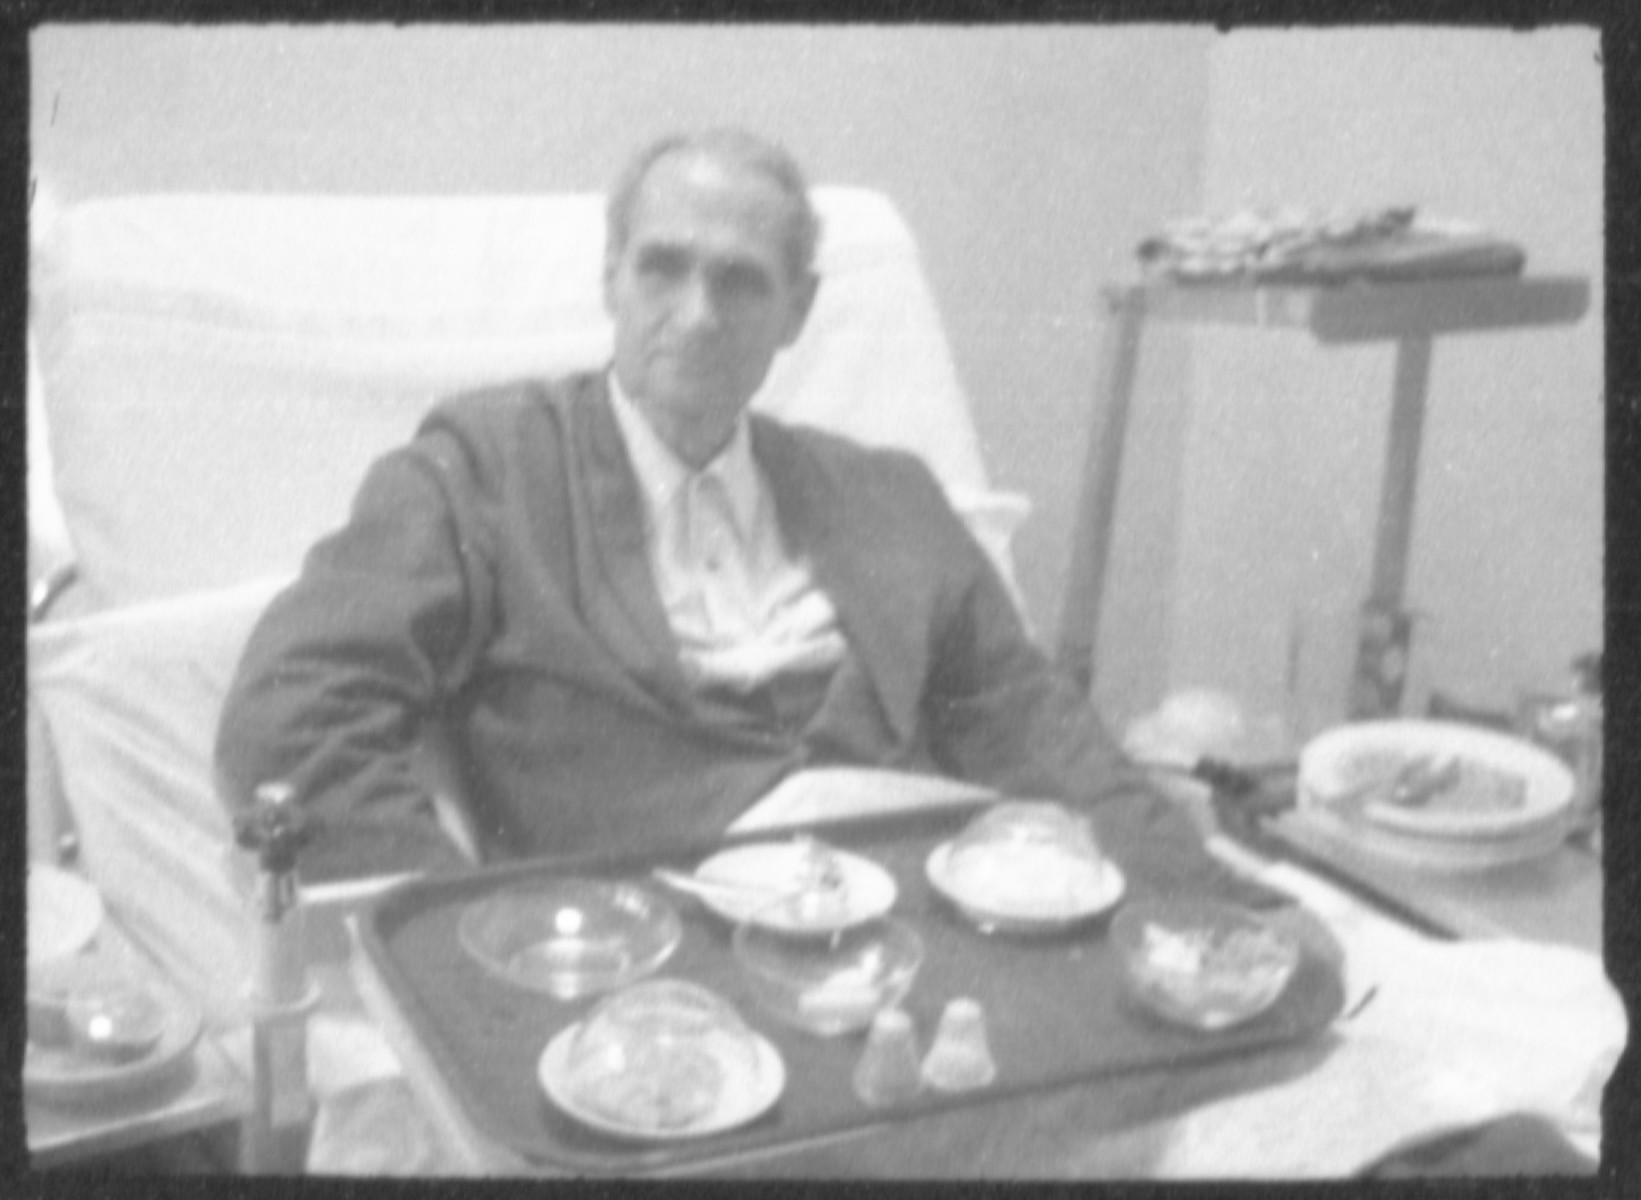 Clandestine photographs of Rudolf Hess sitting in his hospital bed with his tray of food in the Spandau Prison.